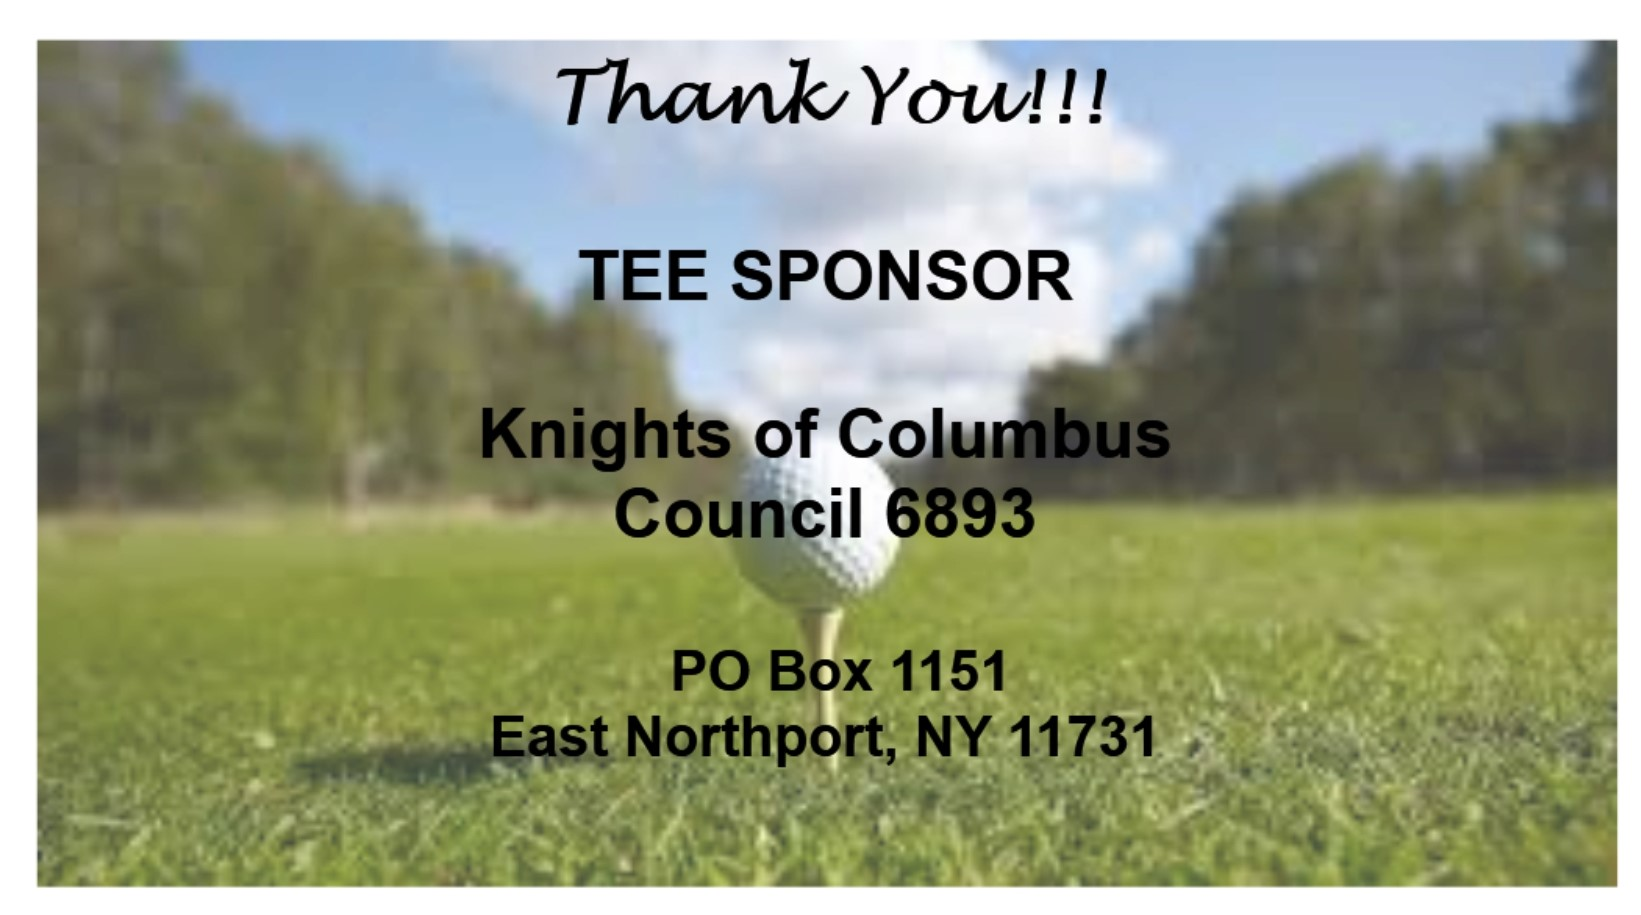 Knights of Columbus Council 6893